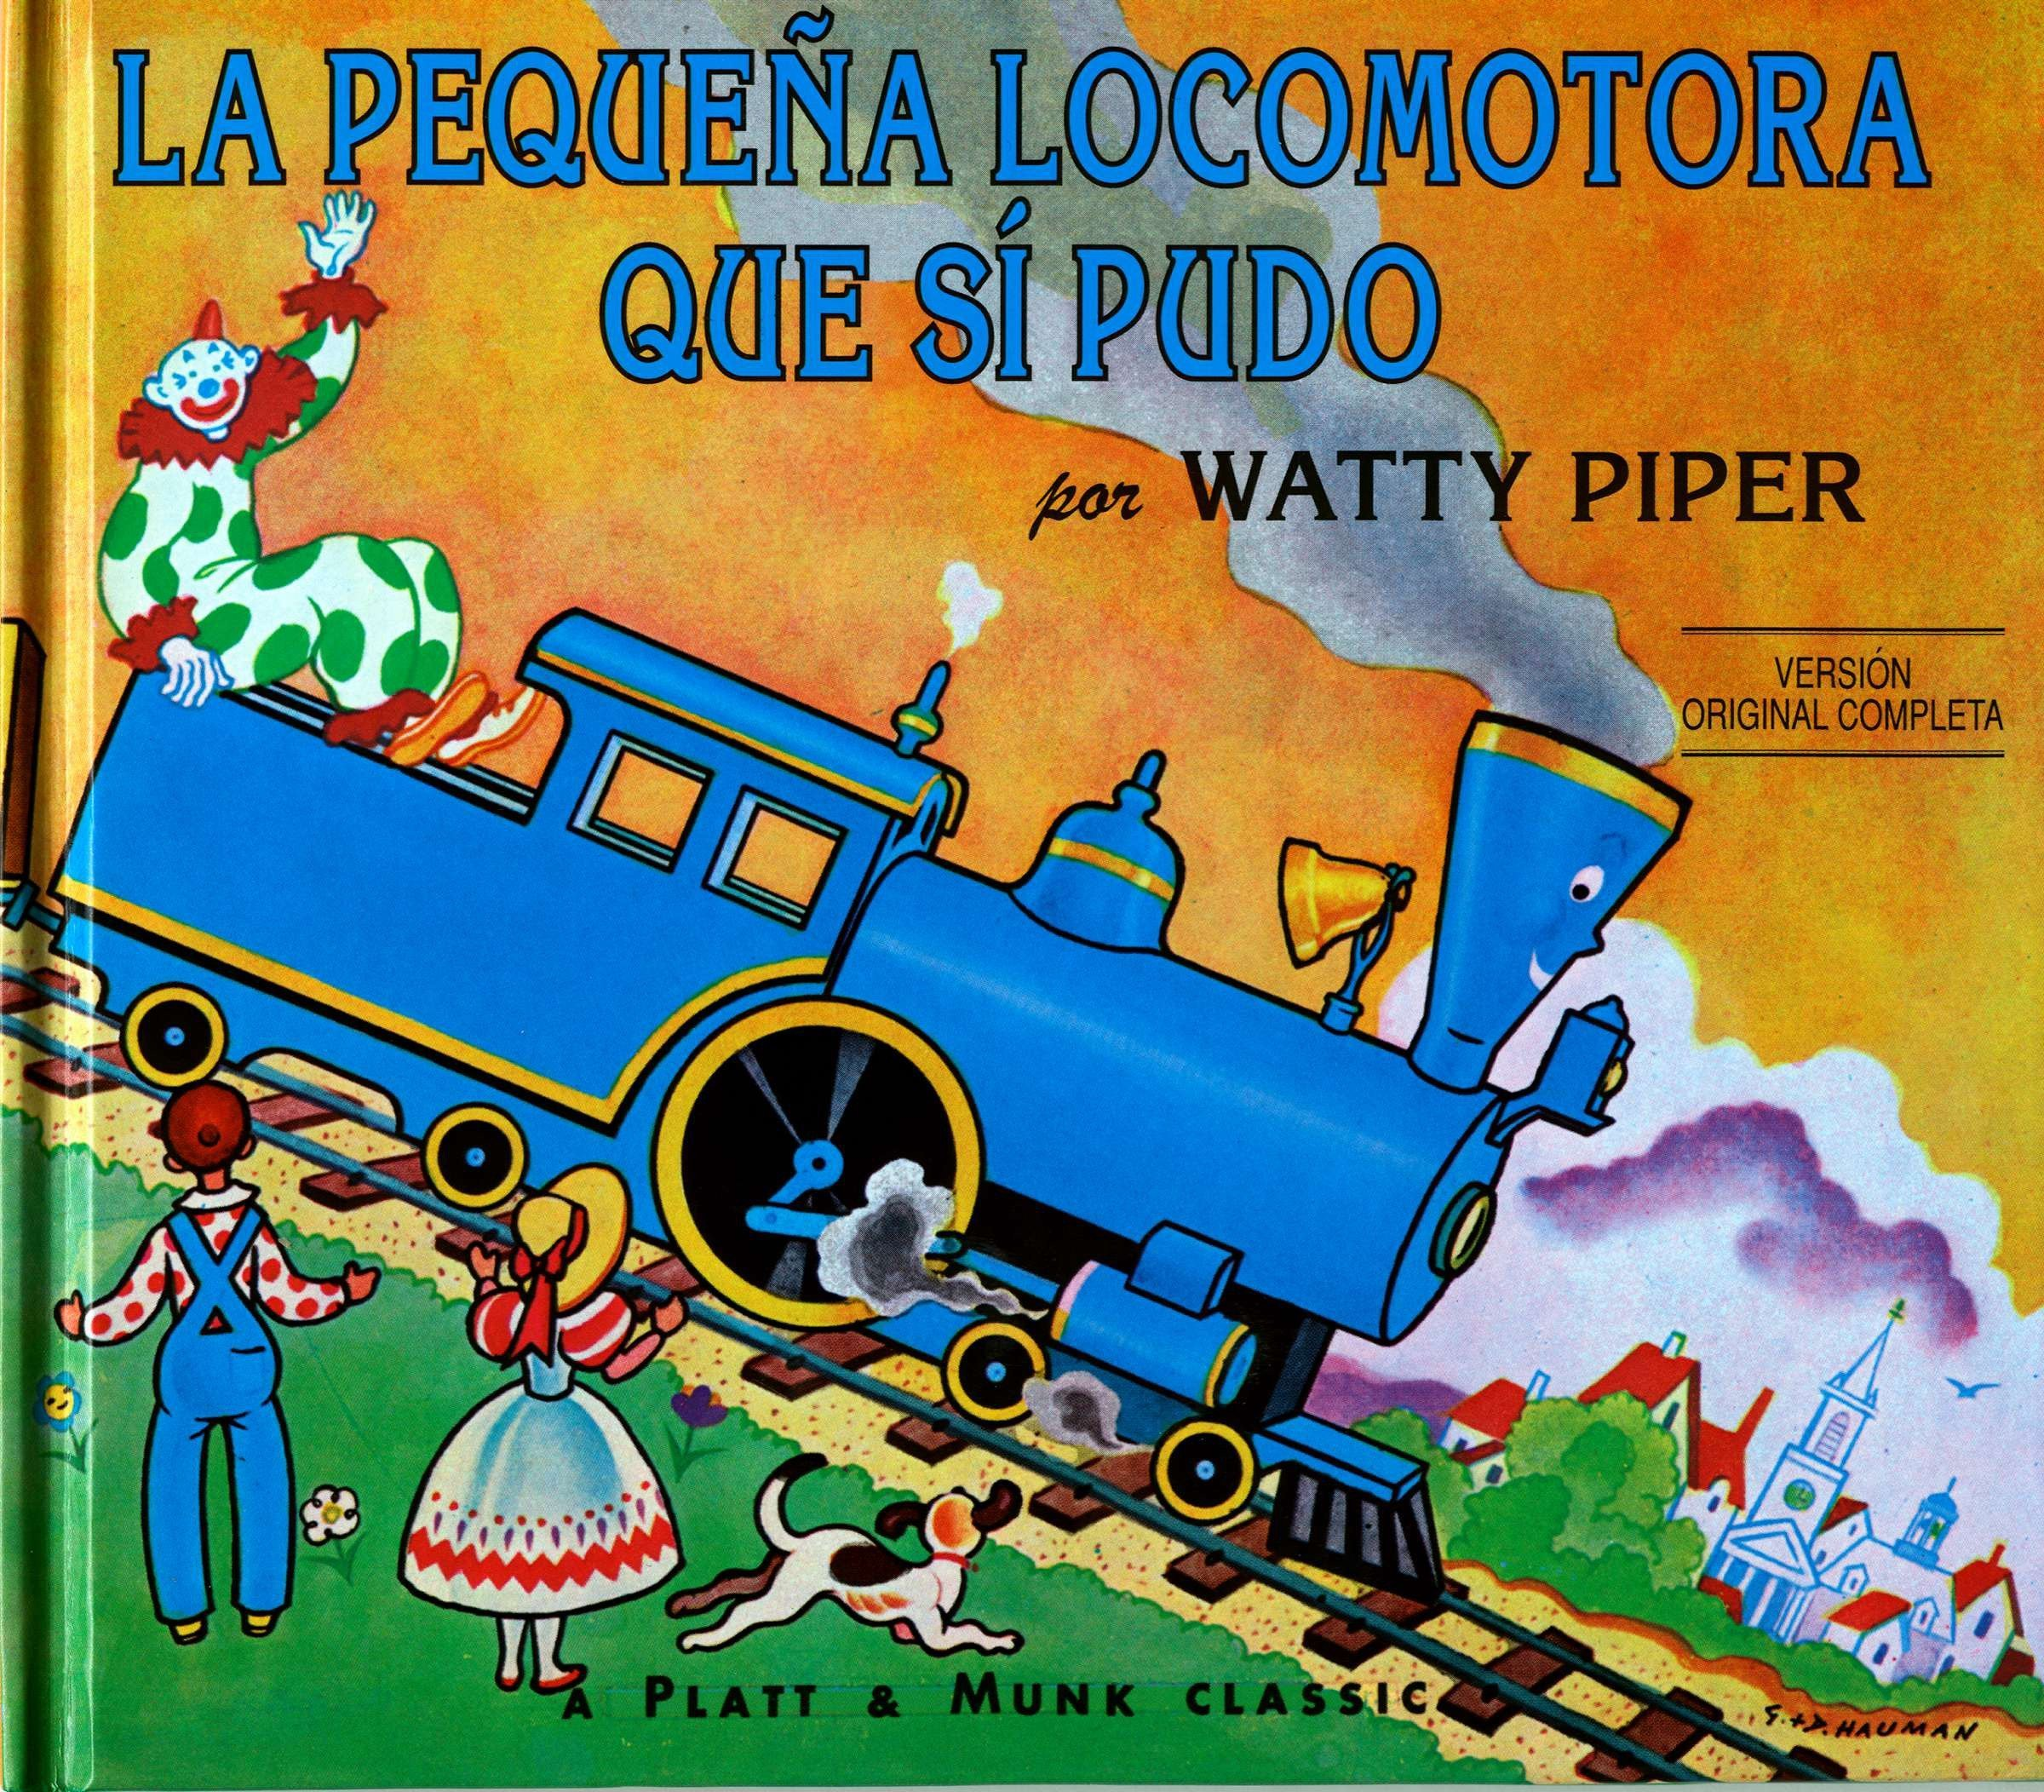 La Pequena Locomotora Que Si Pudo (The Little Engine That Could)